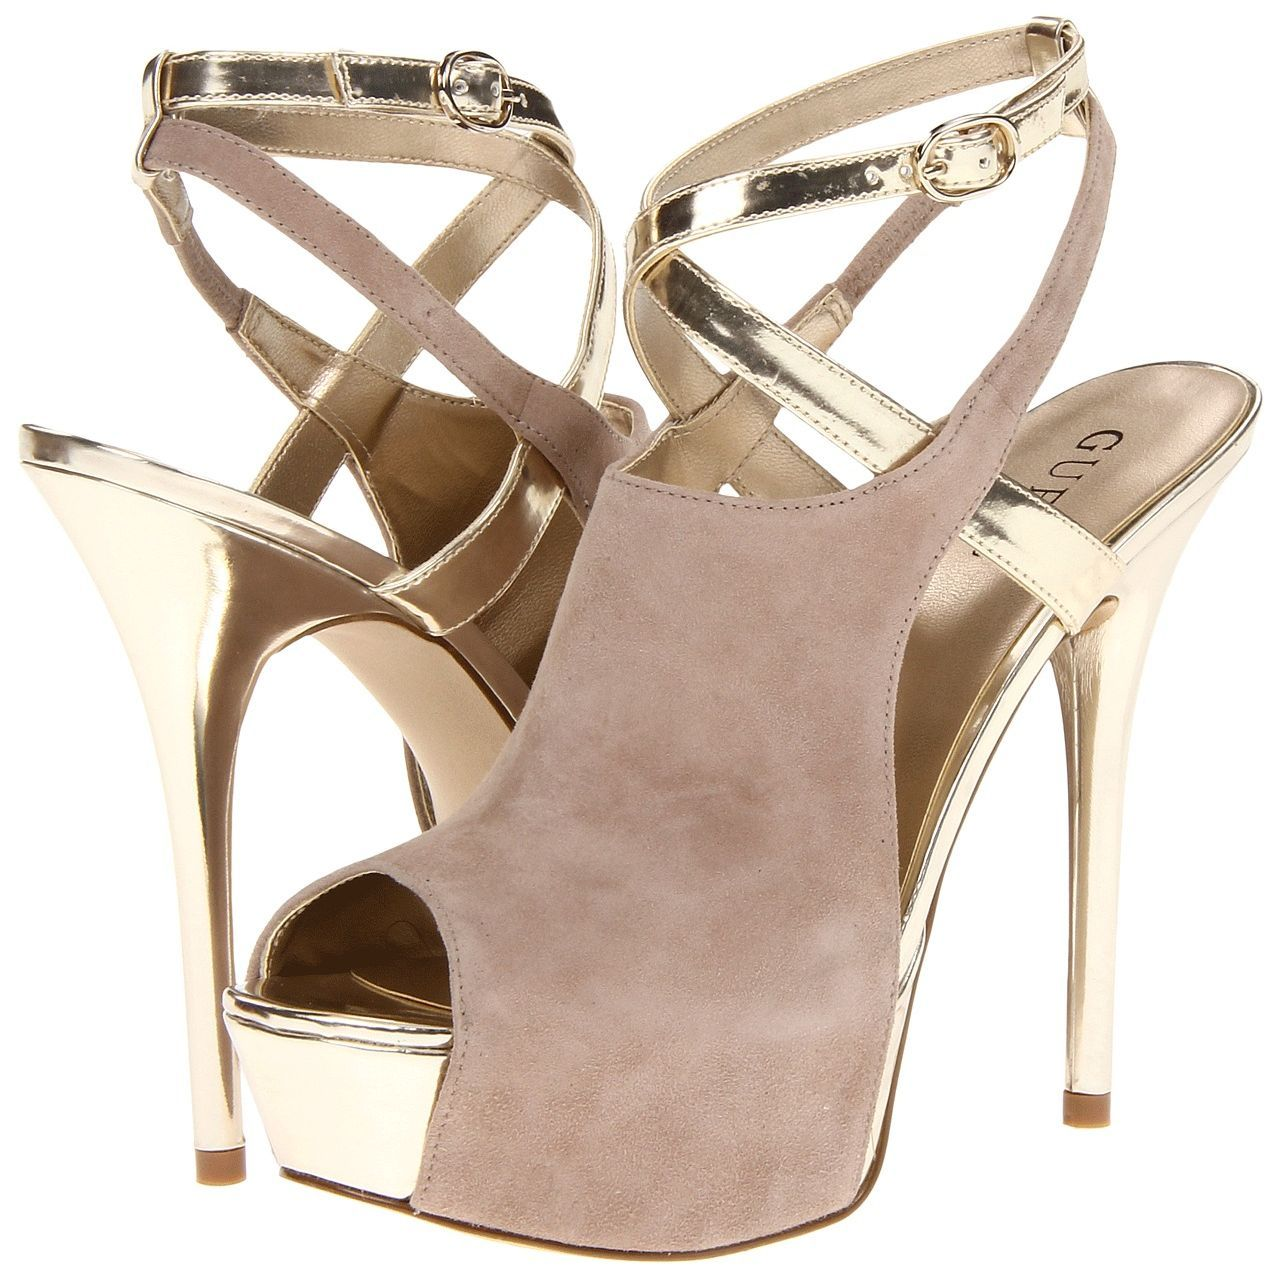 Guess Giga Shoes - neutral with gold